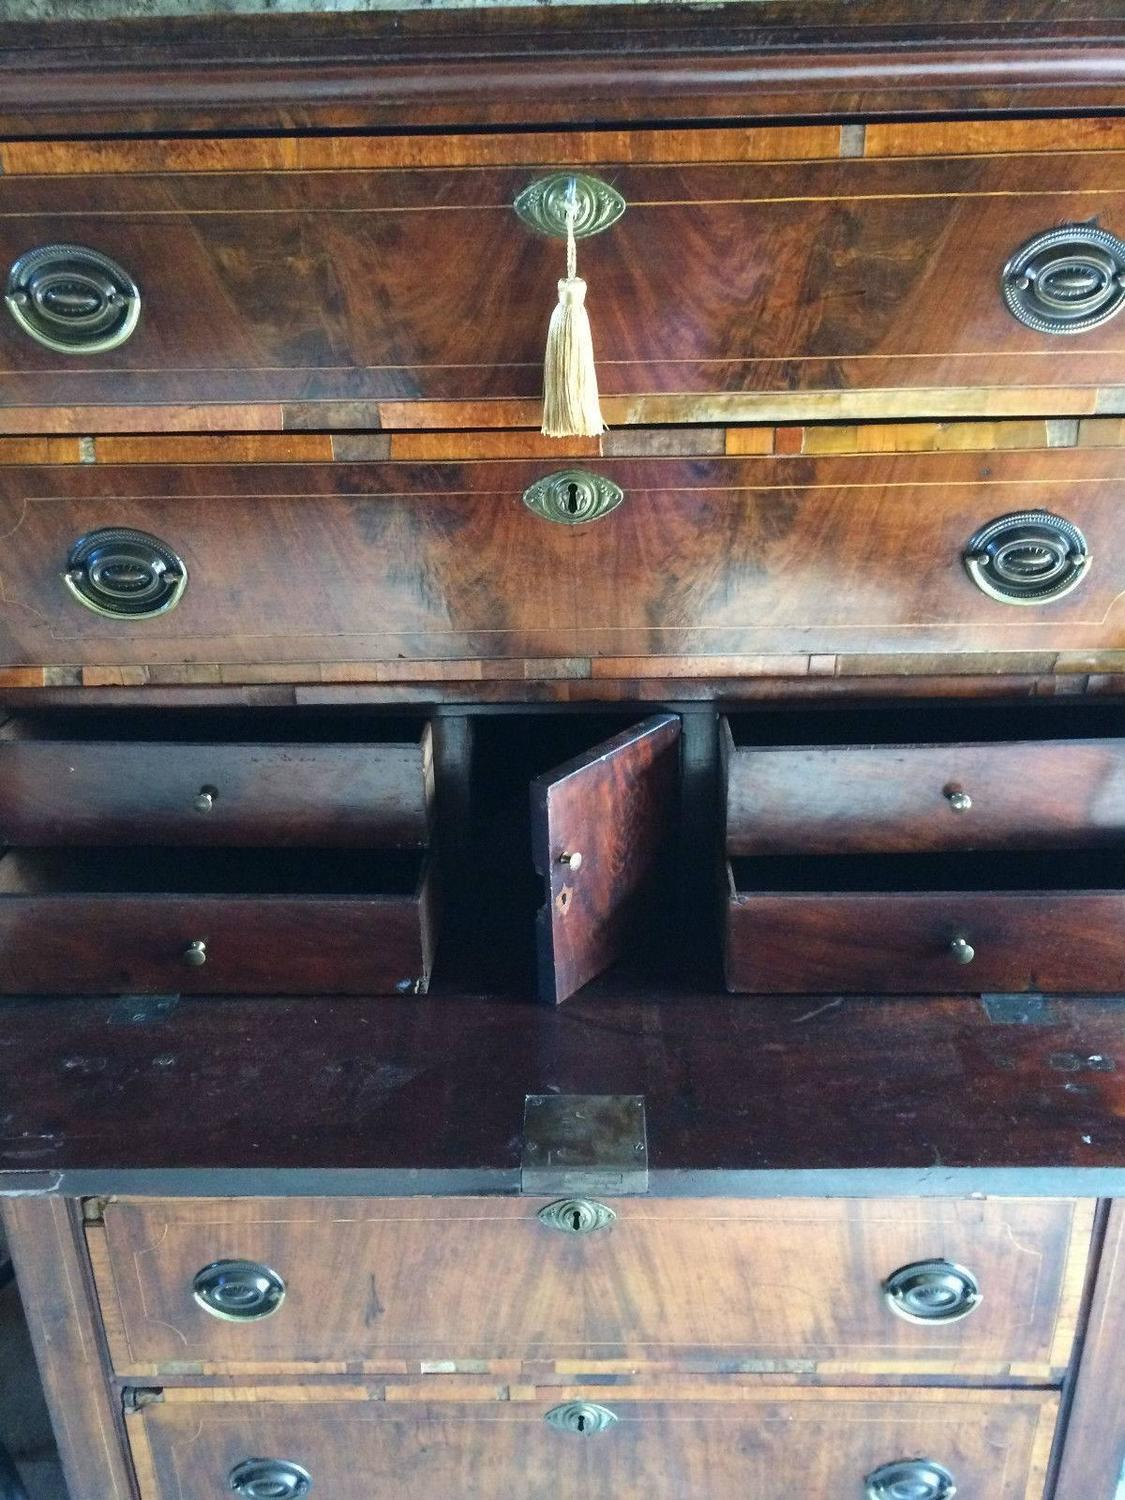 #976434 George III Antique Tallboy Chest Of Drawers Secretaire  with 1125x1500 px of Highly Rated Vintage Tallboy Chest Of Drawers 15001125 picture/photo @ avoidforclosure.info